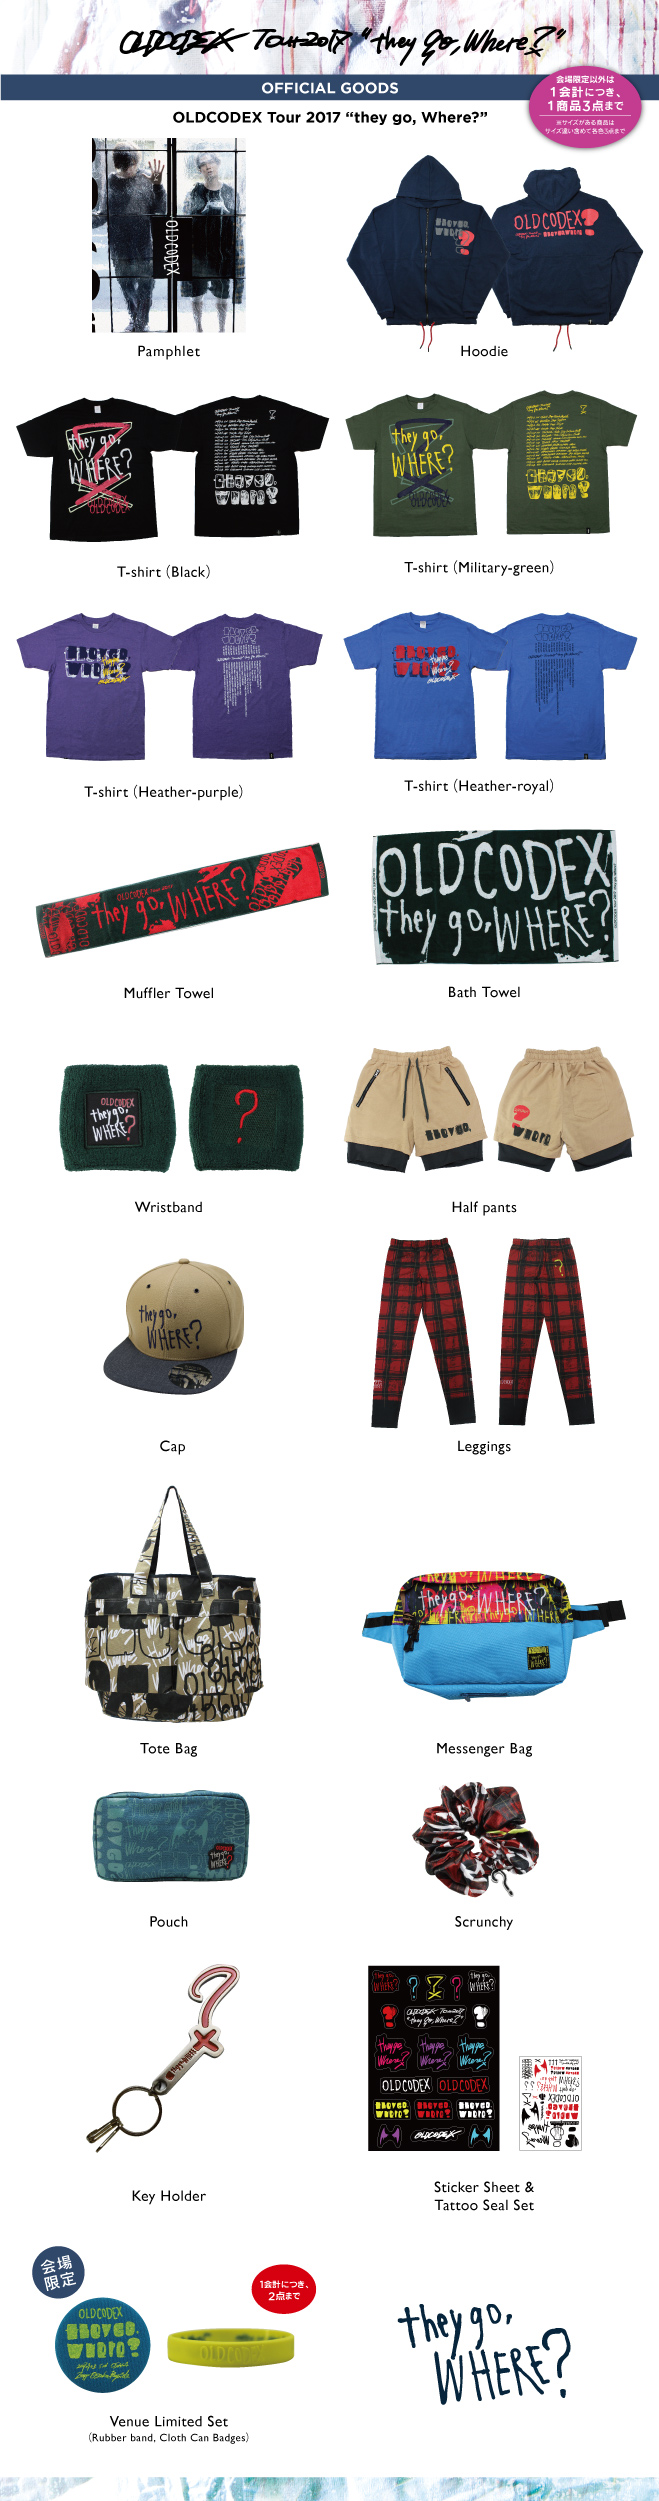 "OLDCODEX Tour 2017 ""they go, Where?"" OFFICIAL GOODS"